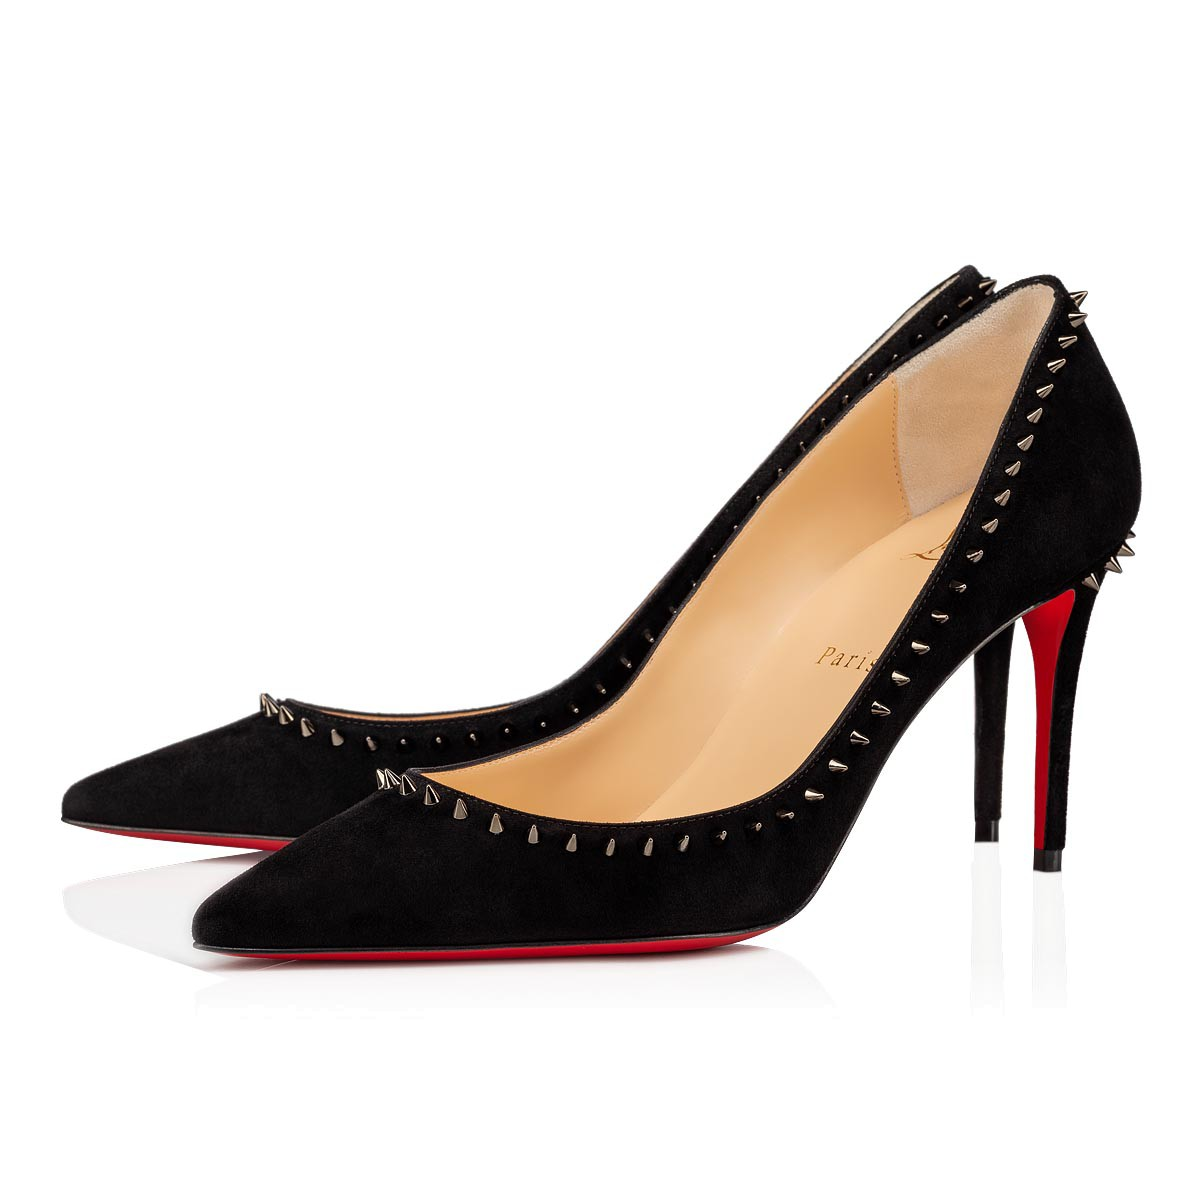 Shoes - Anjalina - Christian Louboutin